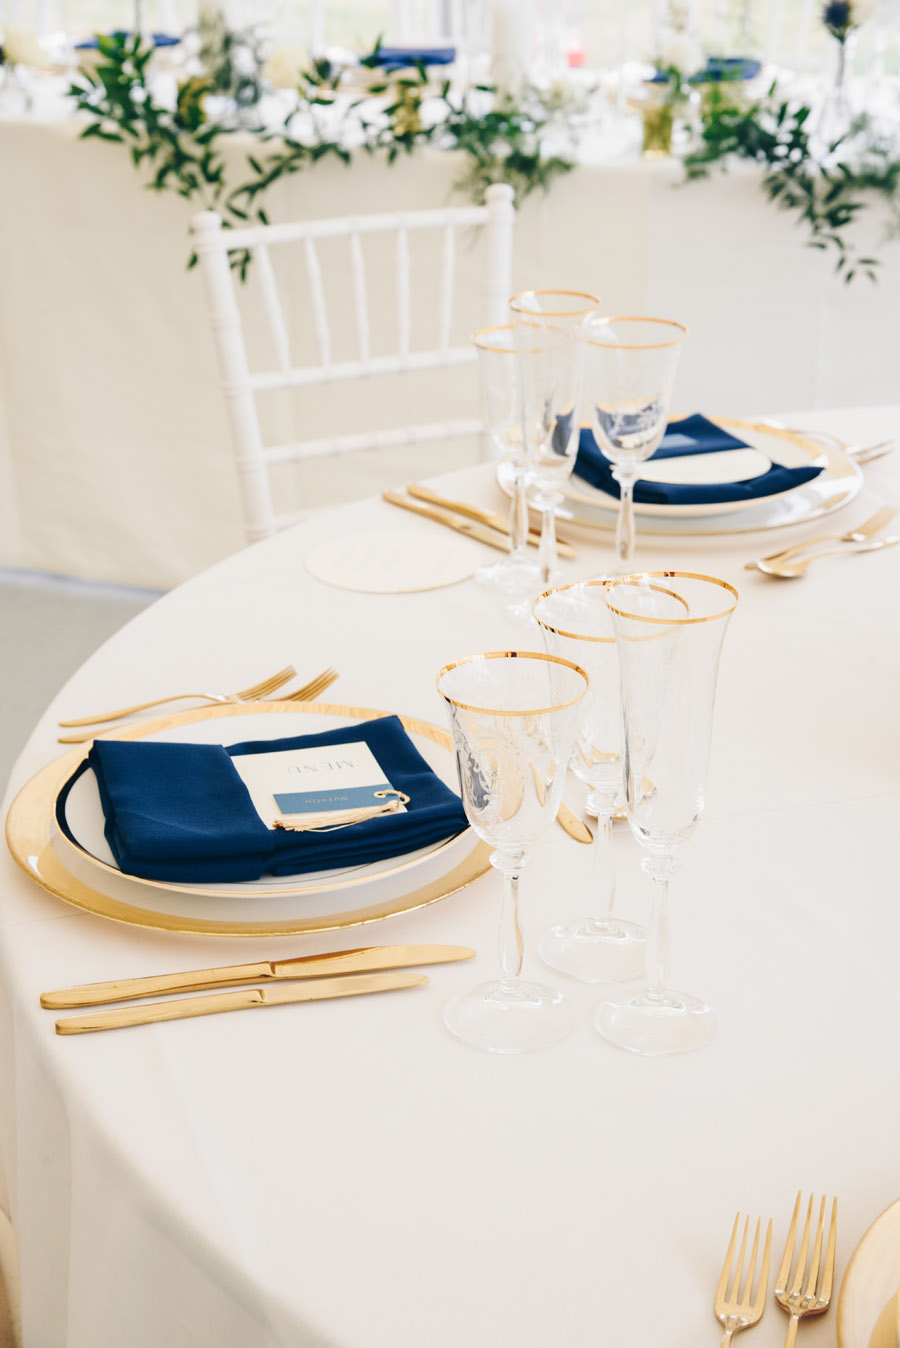 Timeless Elegance and beautiful micro wedding inspiration at New Lodge Lawns (3)